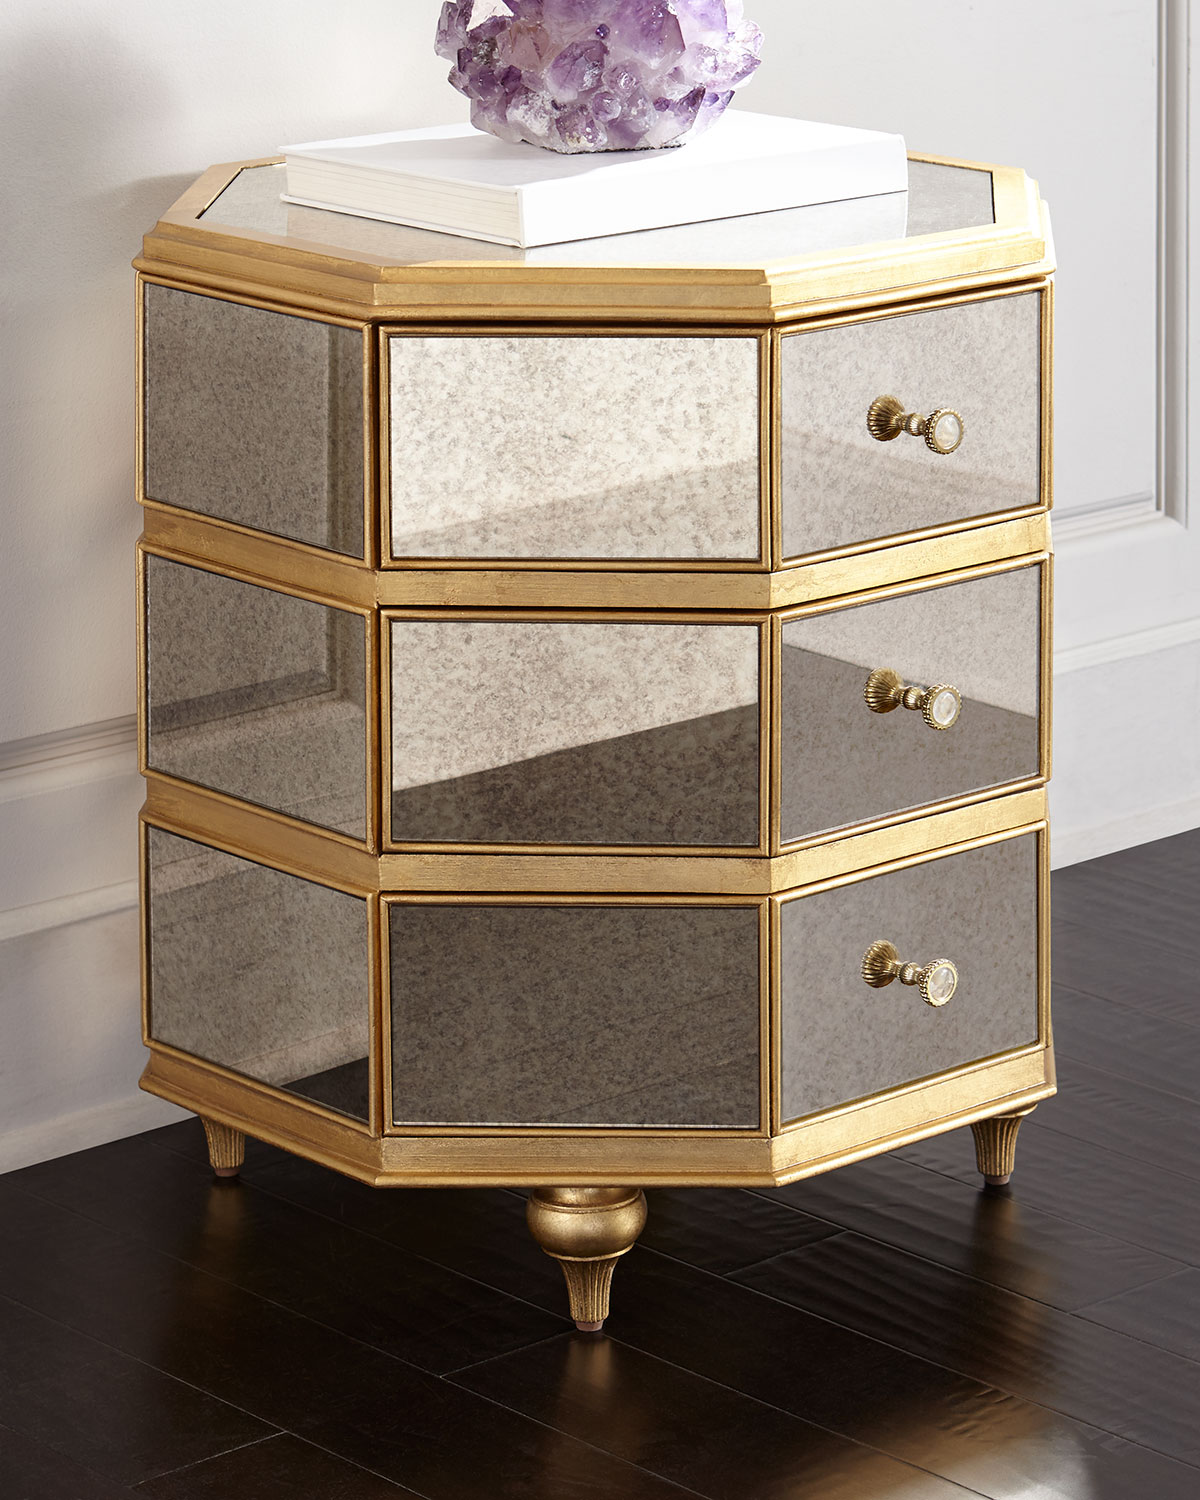 Cynthia Rowley For Hooker Furniture Bewitch Mirrored Side Table